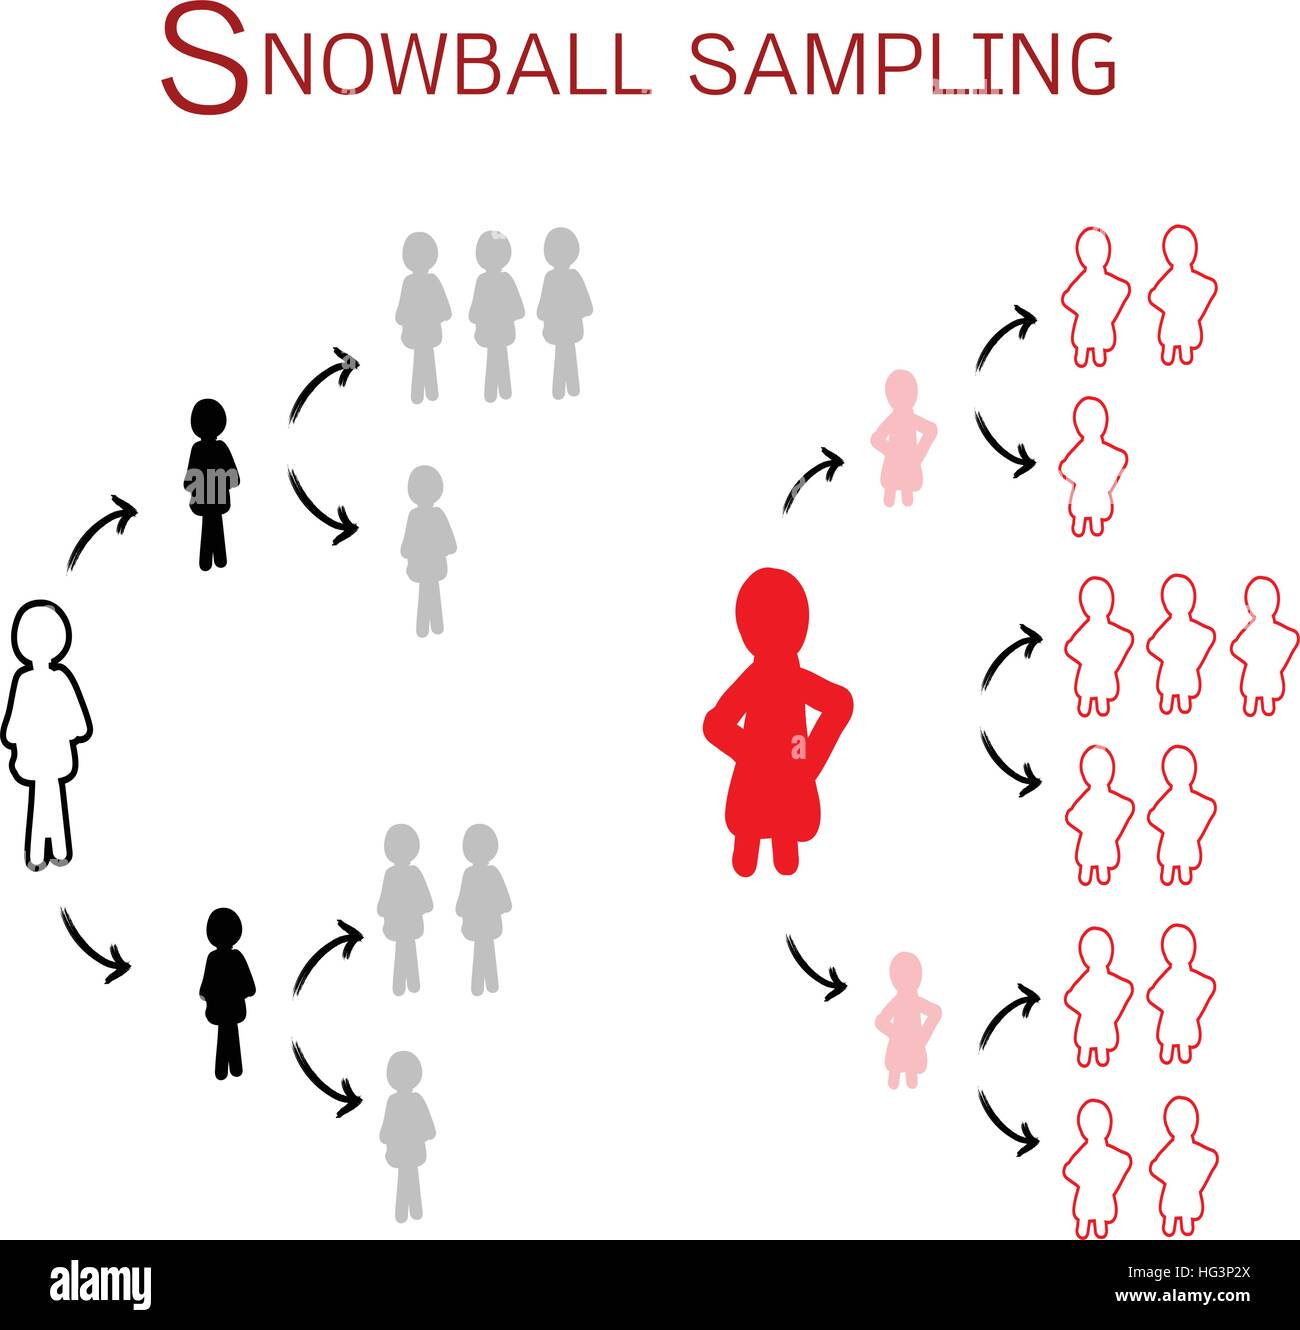 Two Set of Snowball Samplings, The Non-Probability Sampling Technique in Qualitative Research. - Stock Image